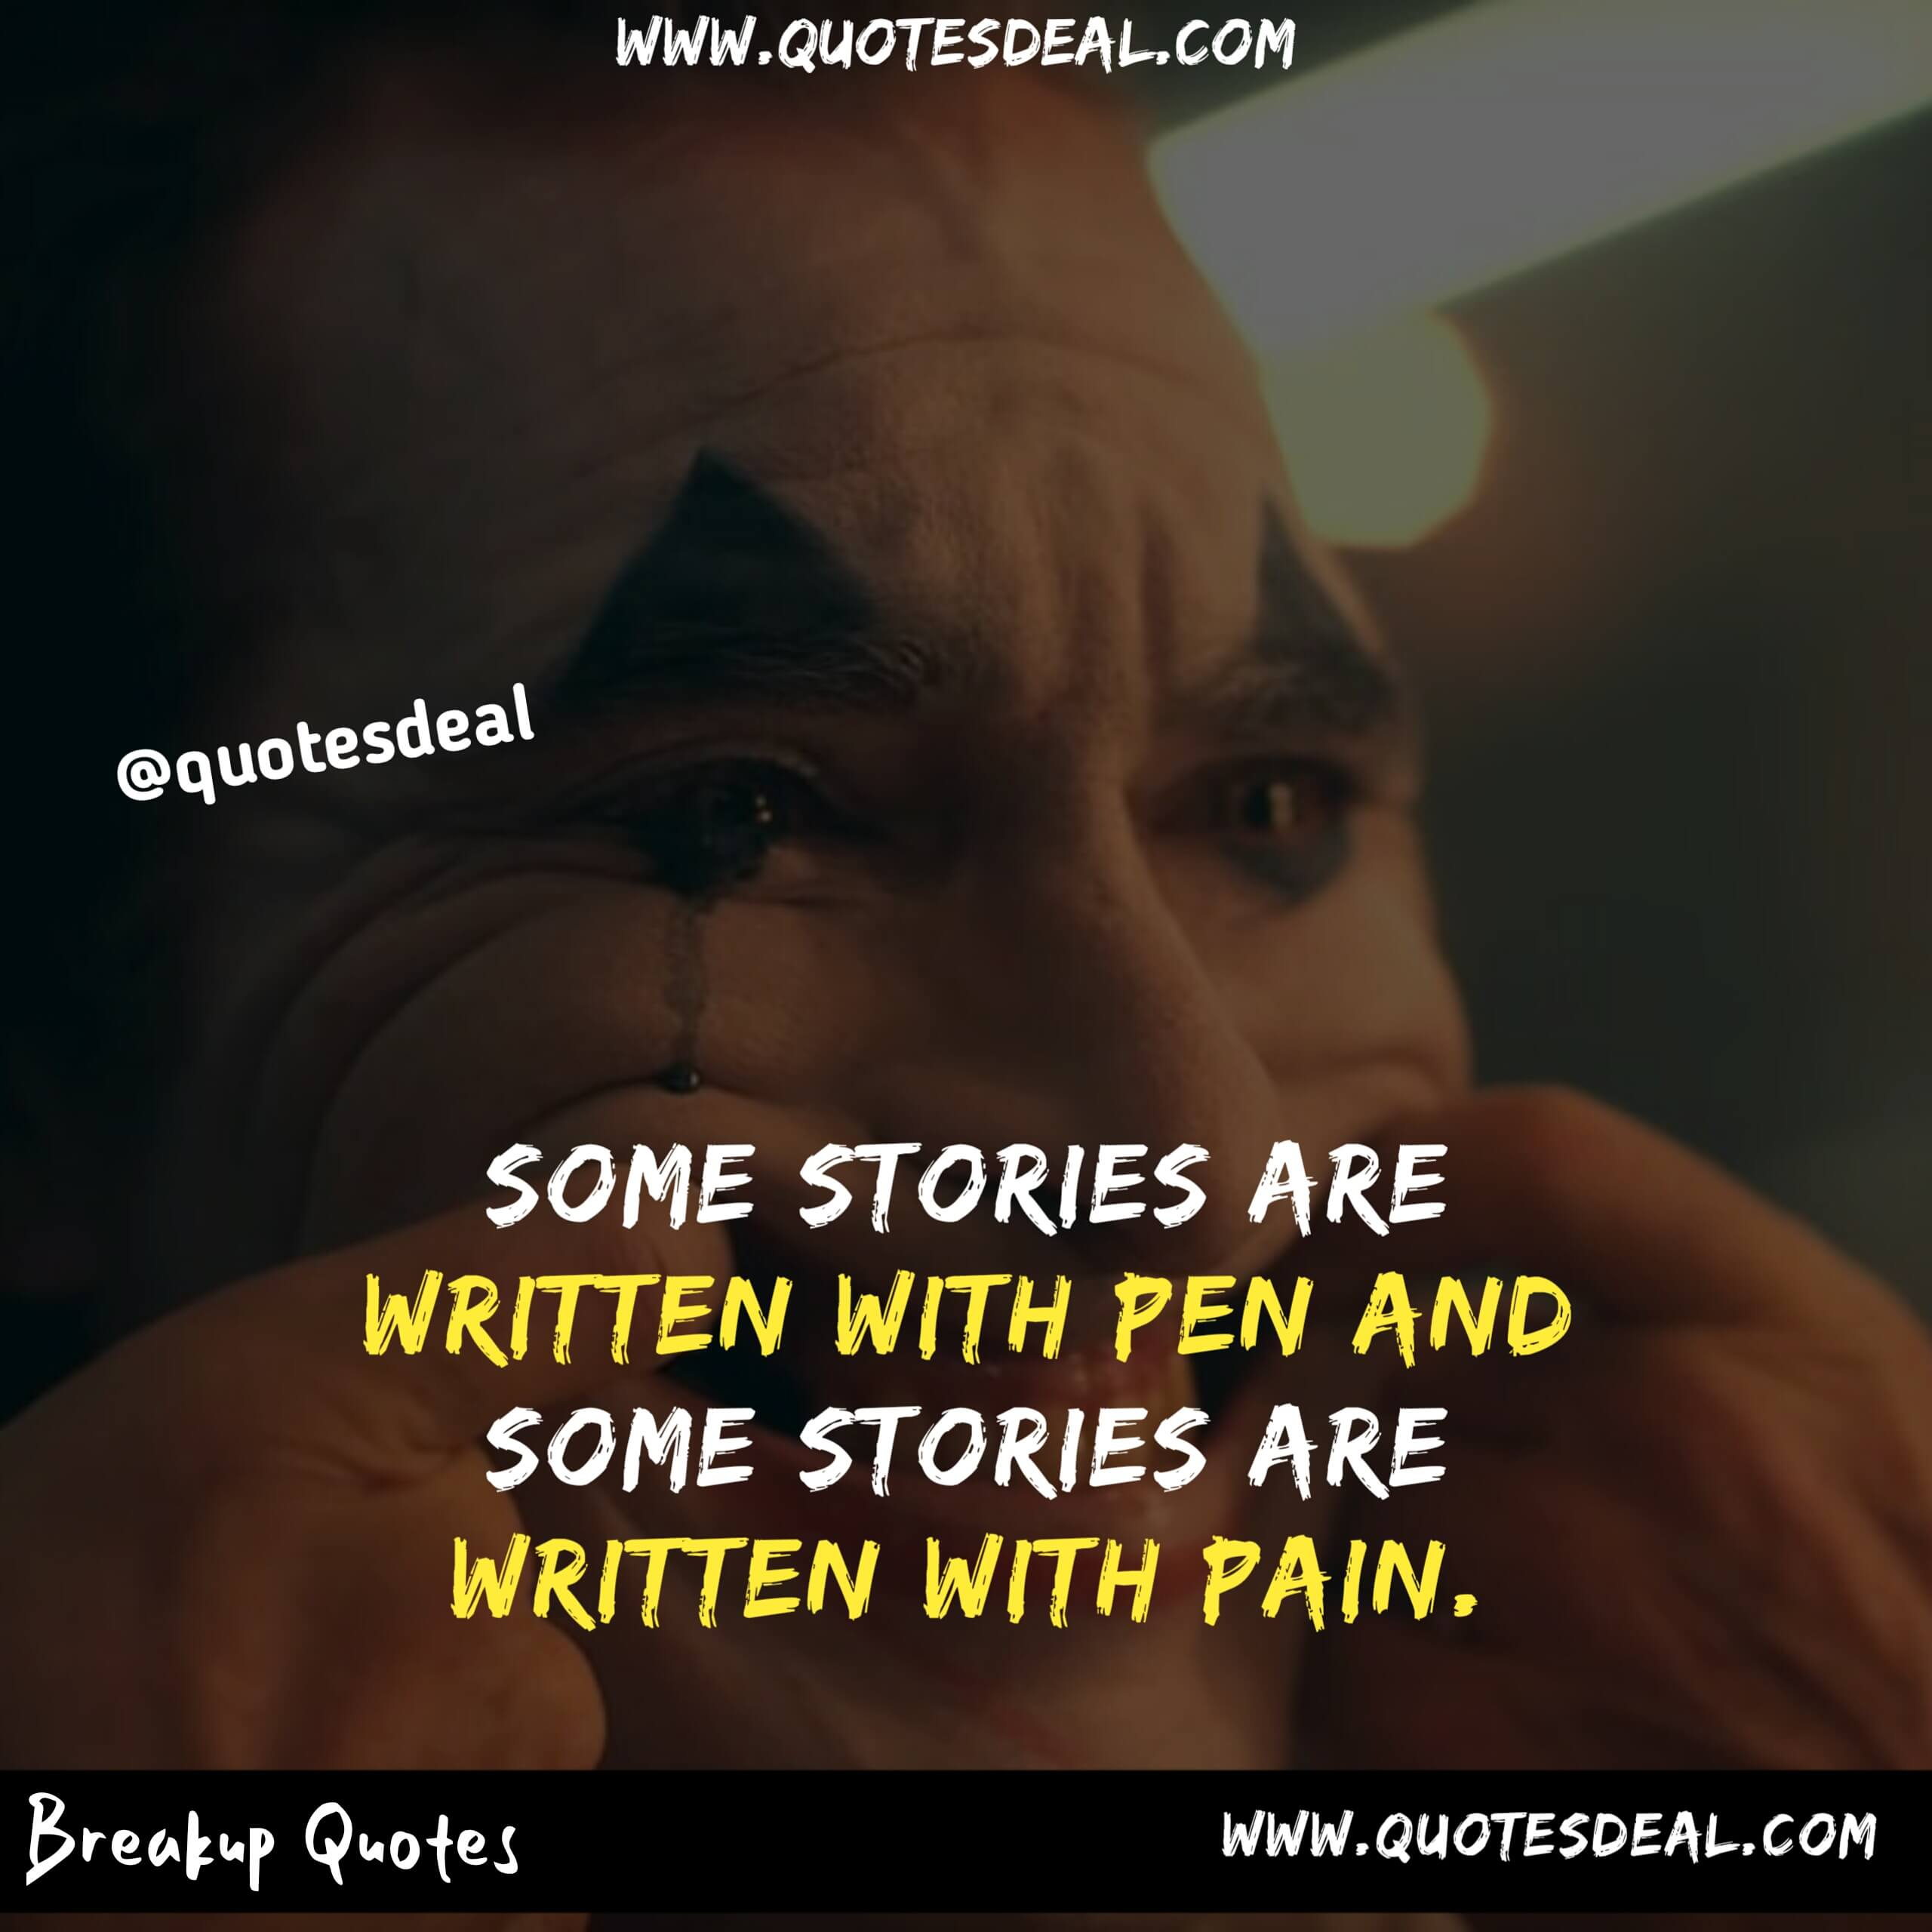 Some stories are written with pen